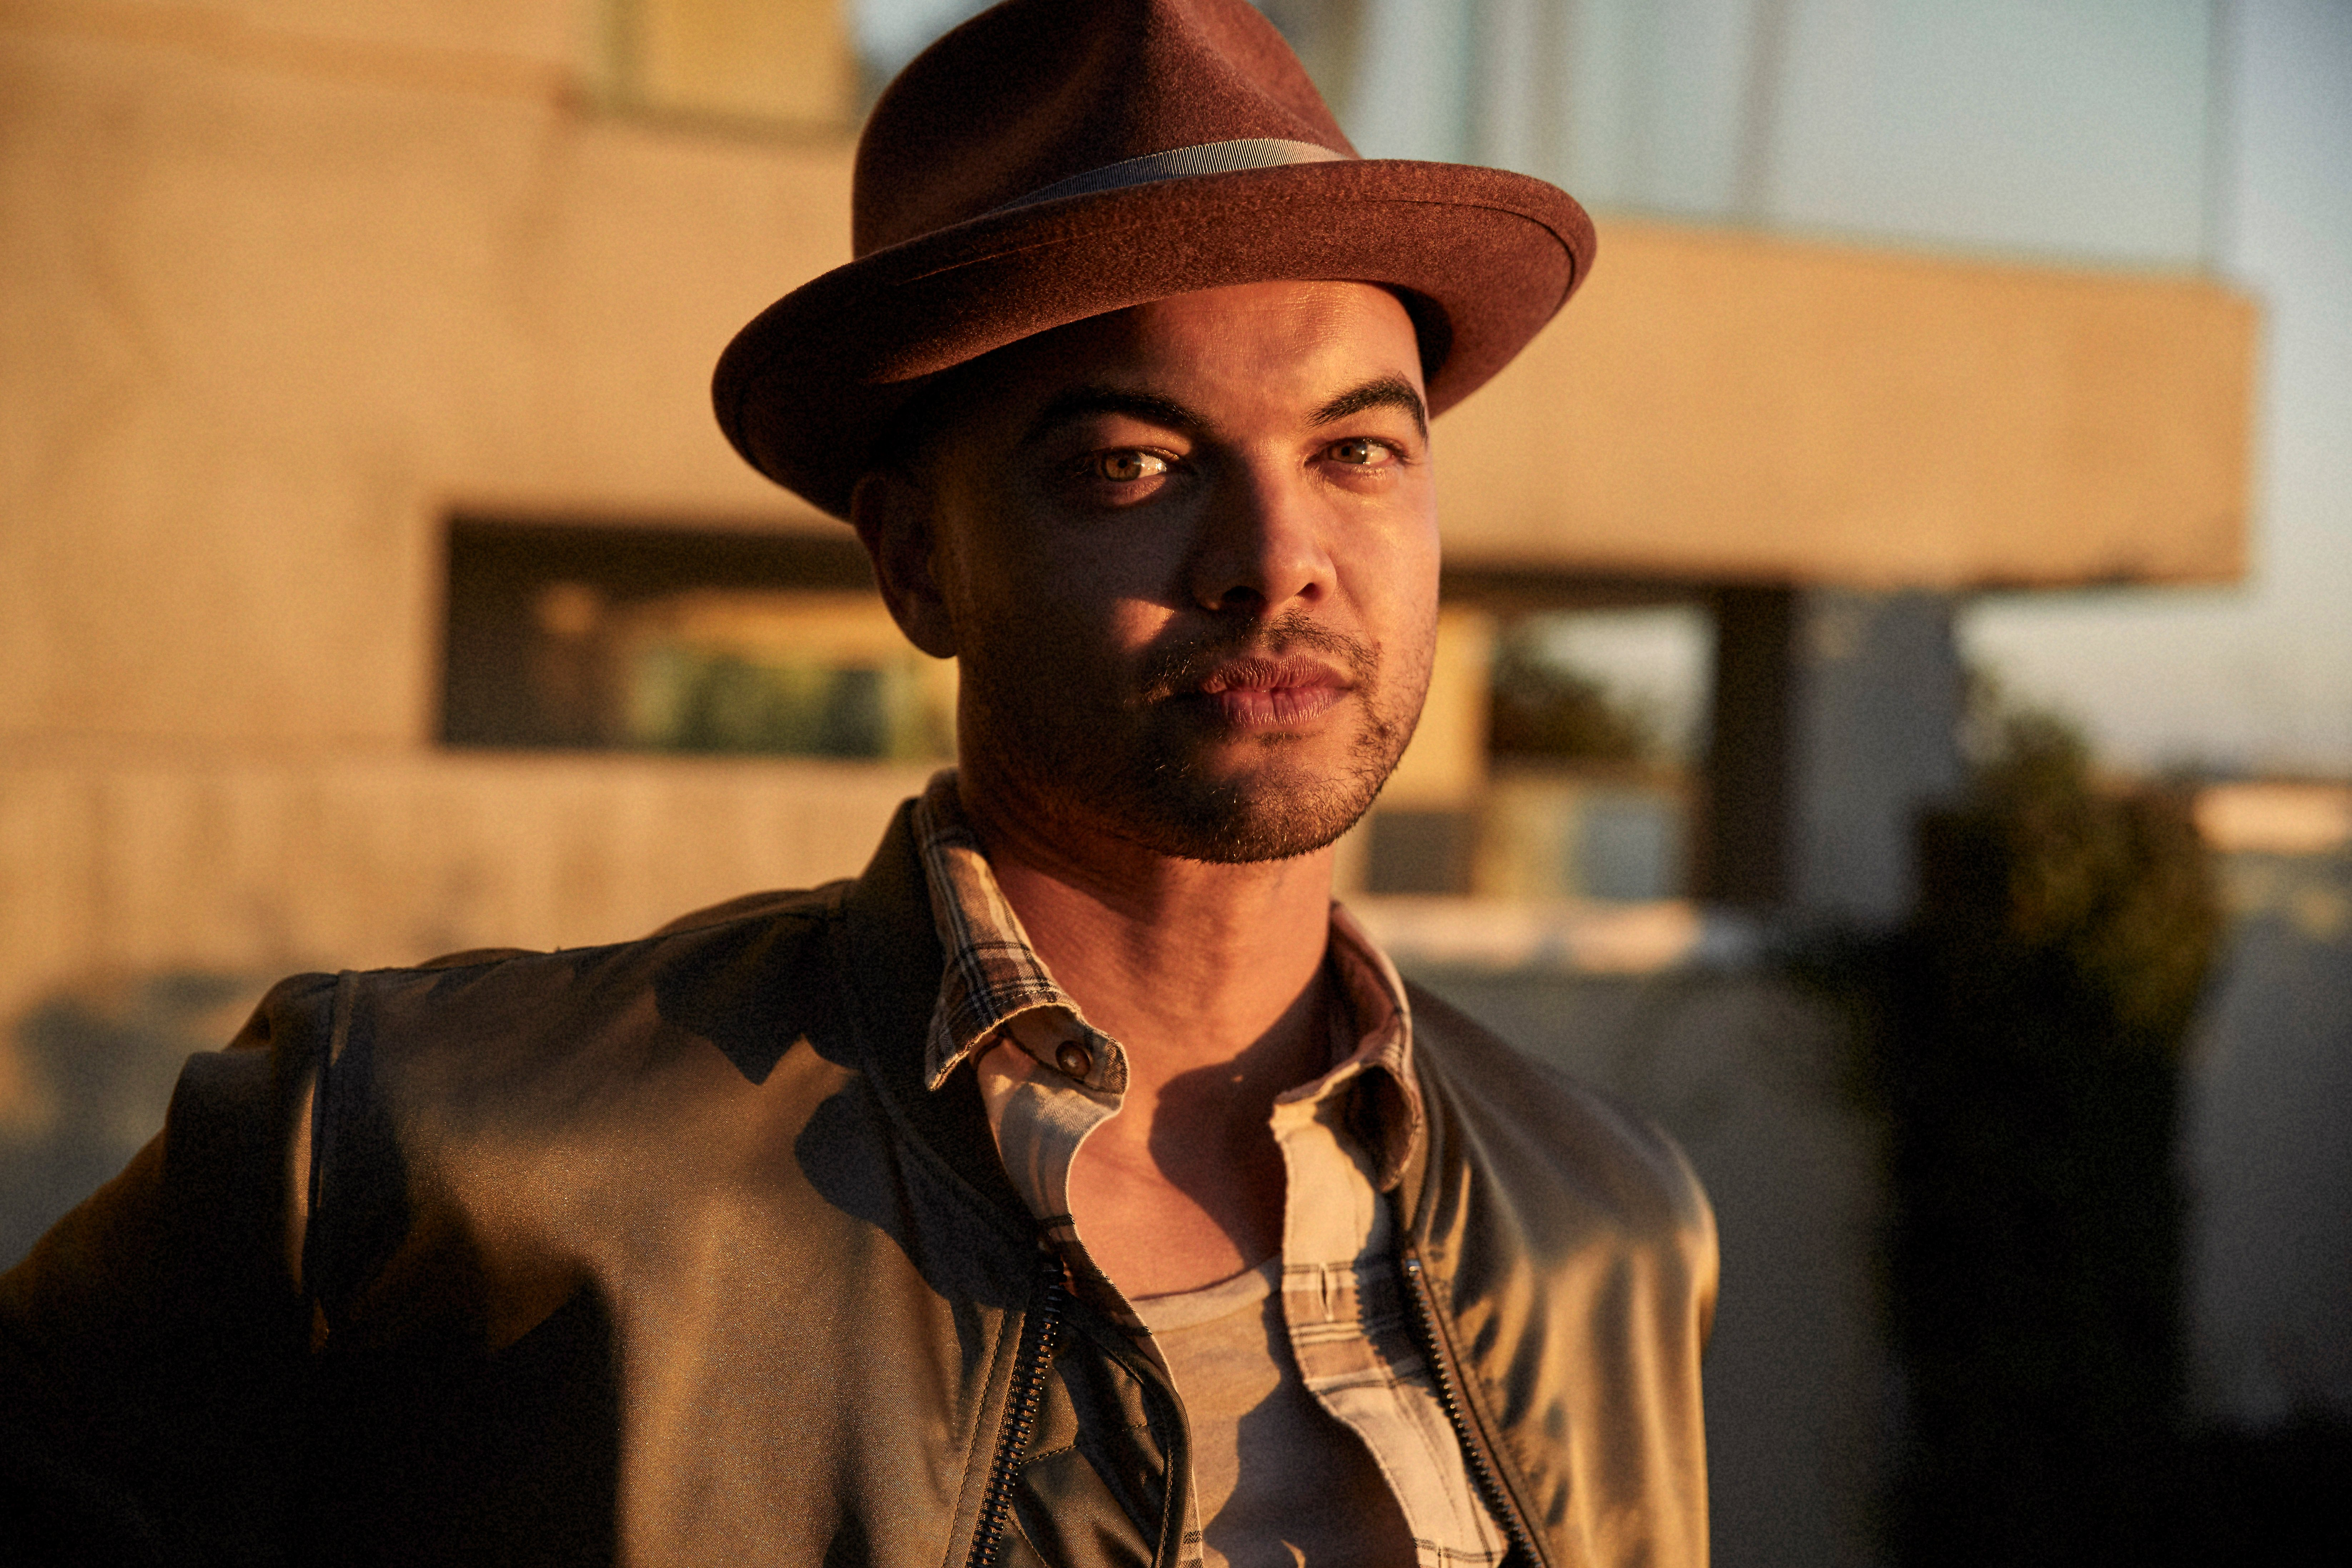 Guy Sebastian releases 'Let Me Drink' featuring The Hamiltones and Wale